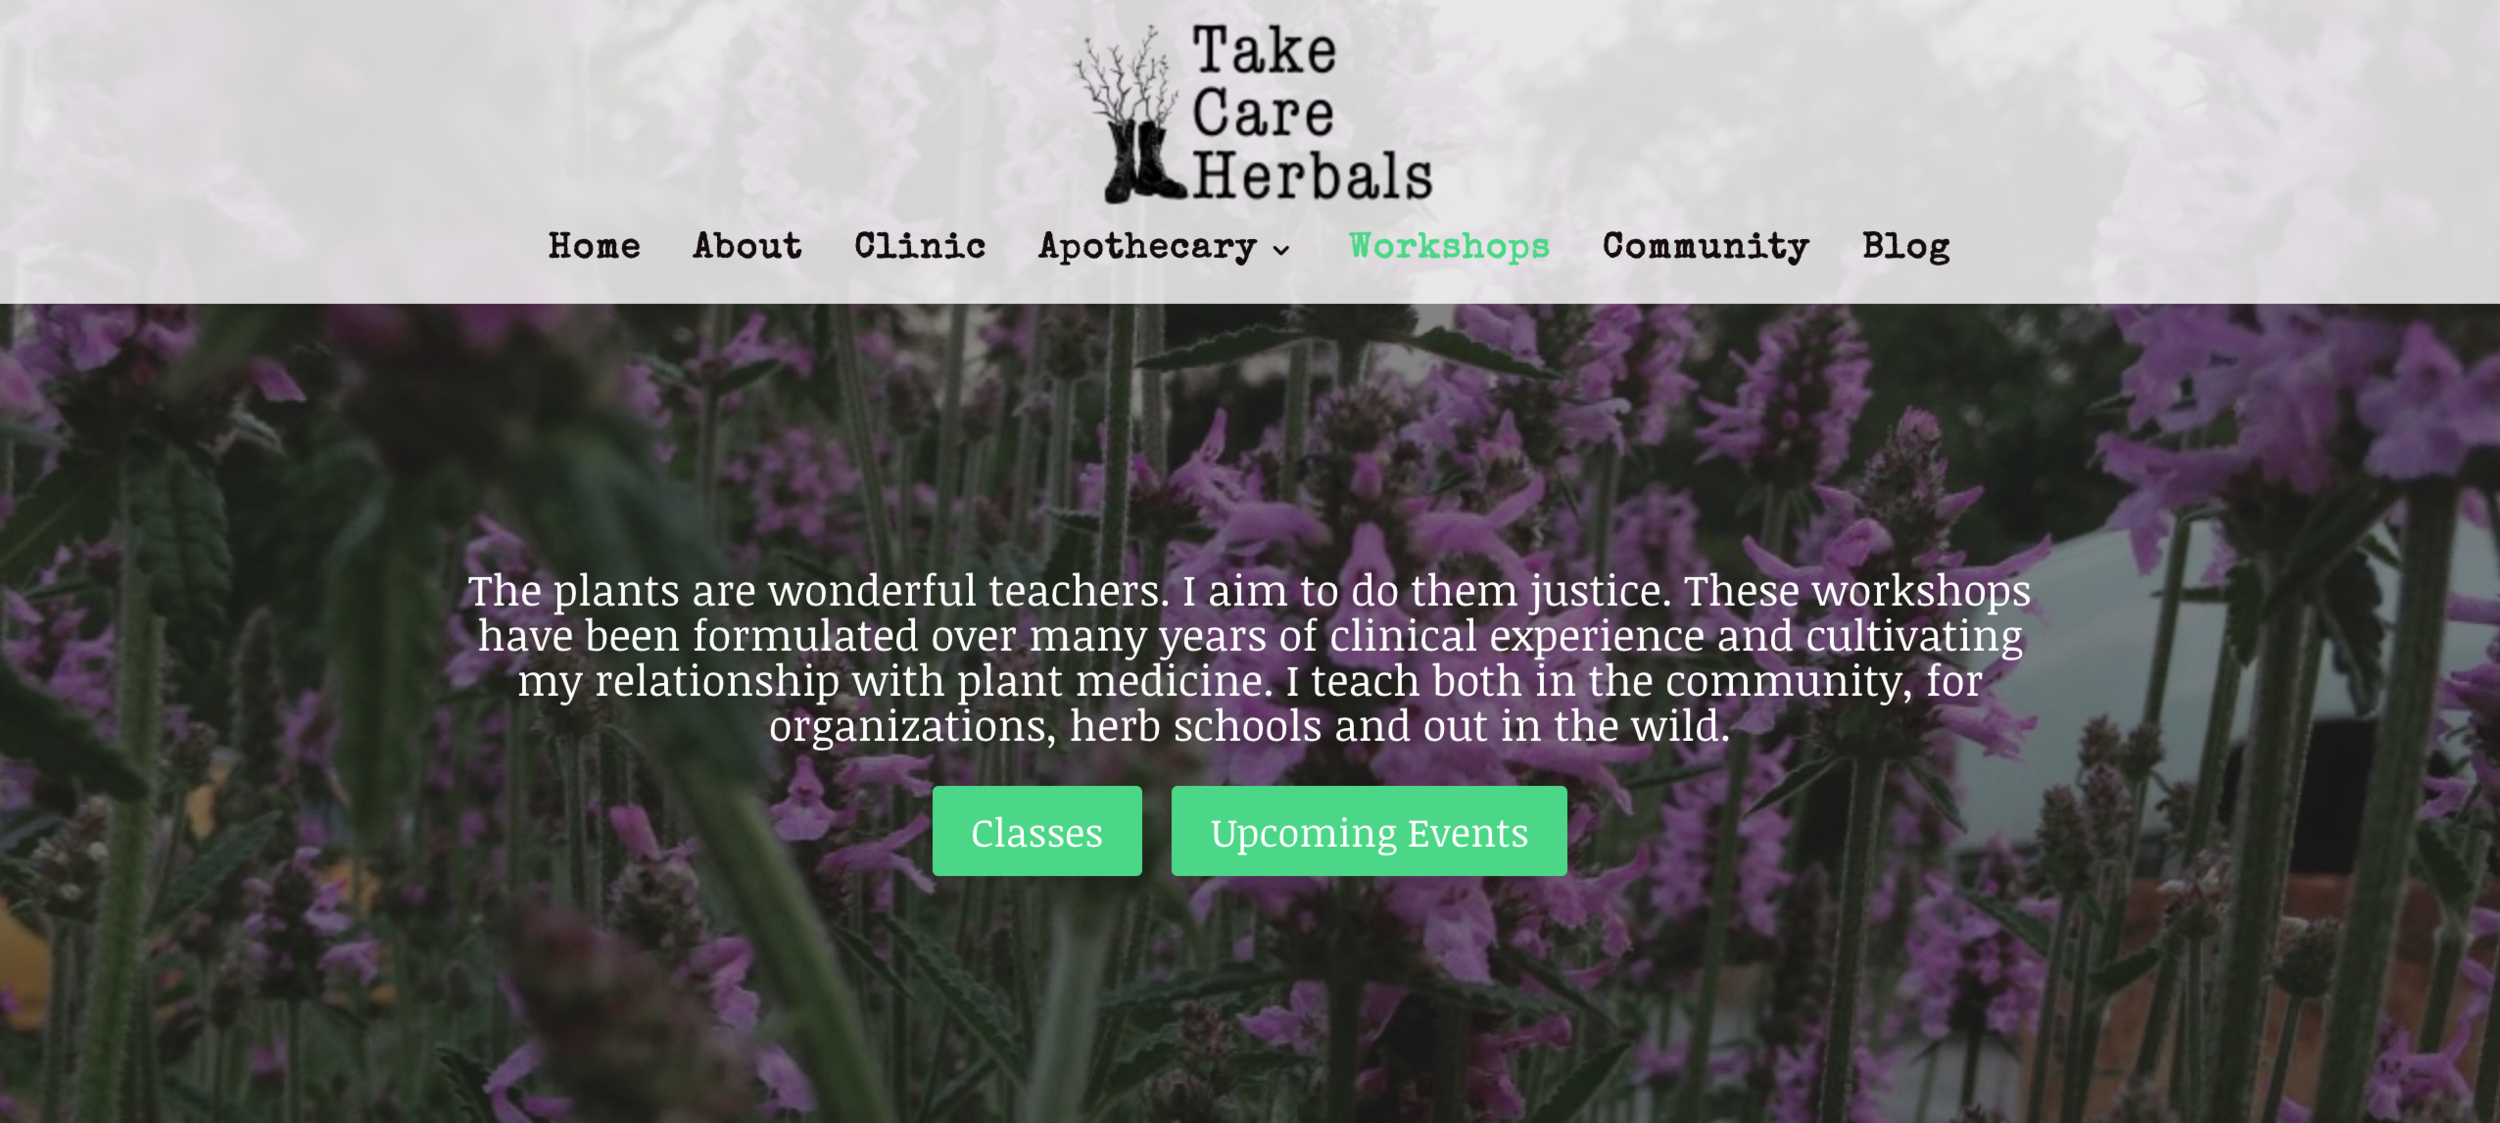 Take_Care_Herbals_Workshops.png